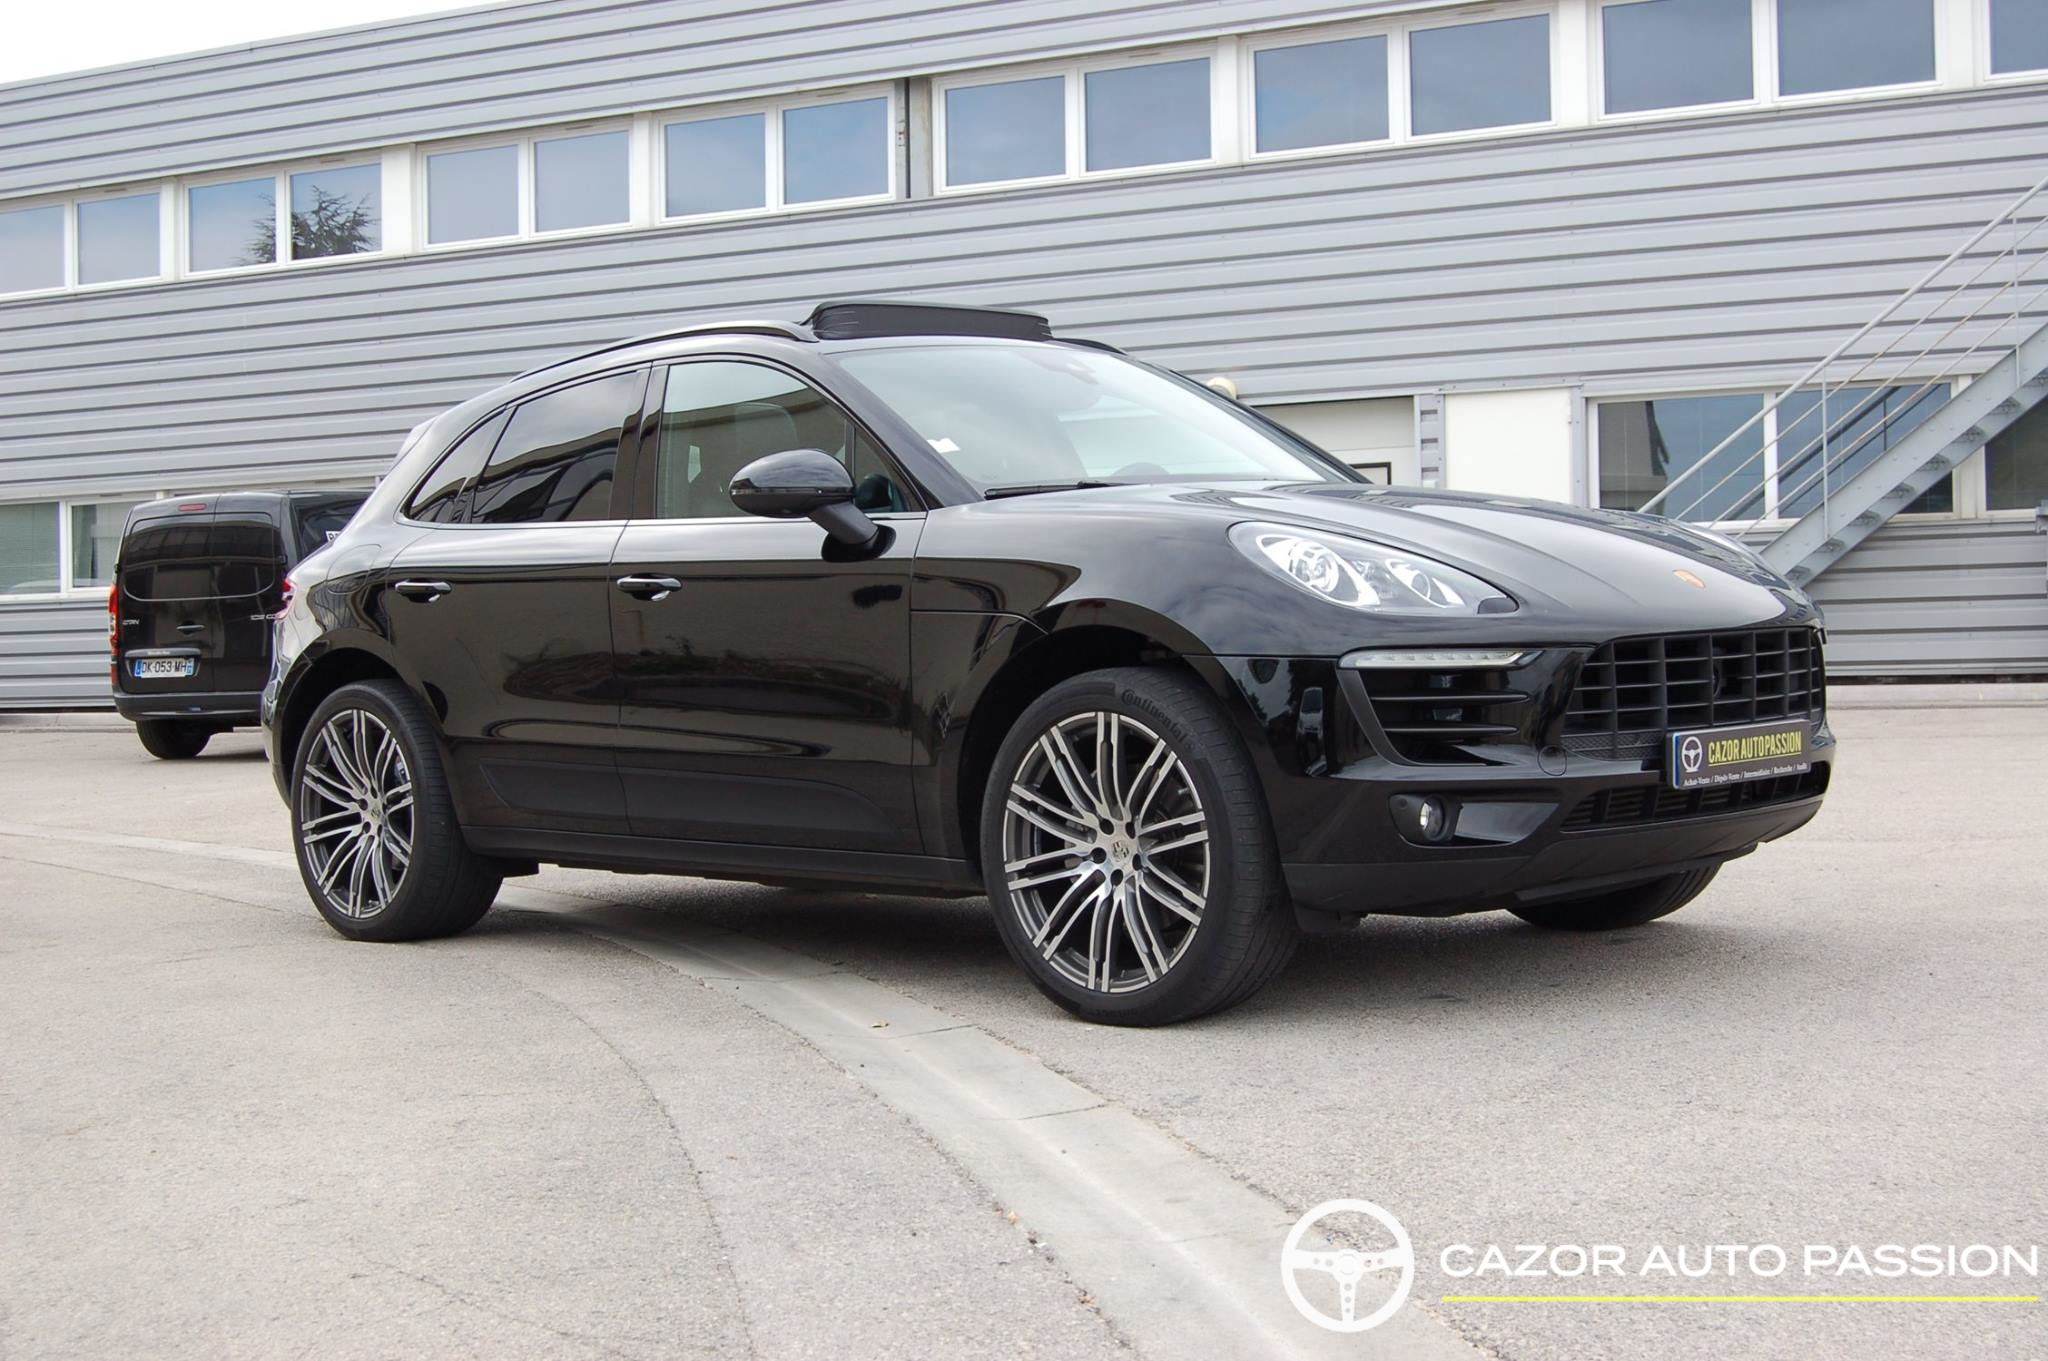 porsche macan s diesel mod le 2015 cazor auto passion. Black Bedroom Furniture Sets. Home Design Ideas